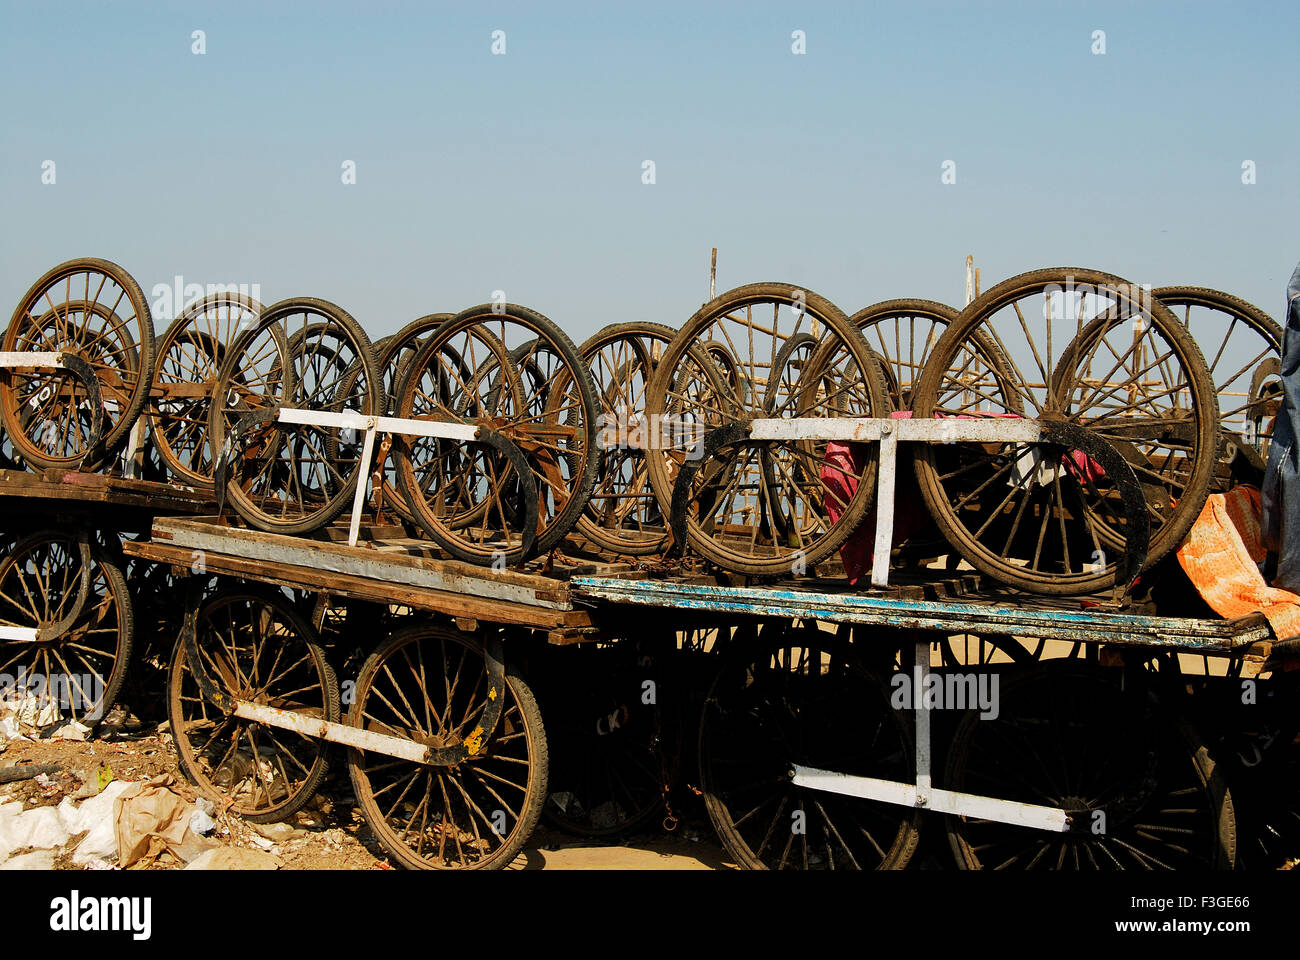 Cycle Carts discarded and Lying waste and Stacked on each other - Stock Image